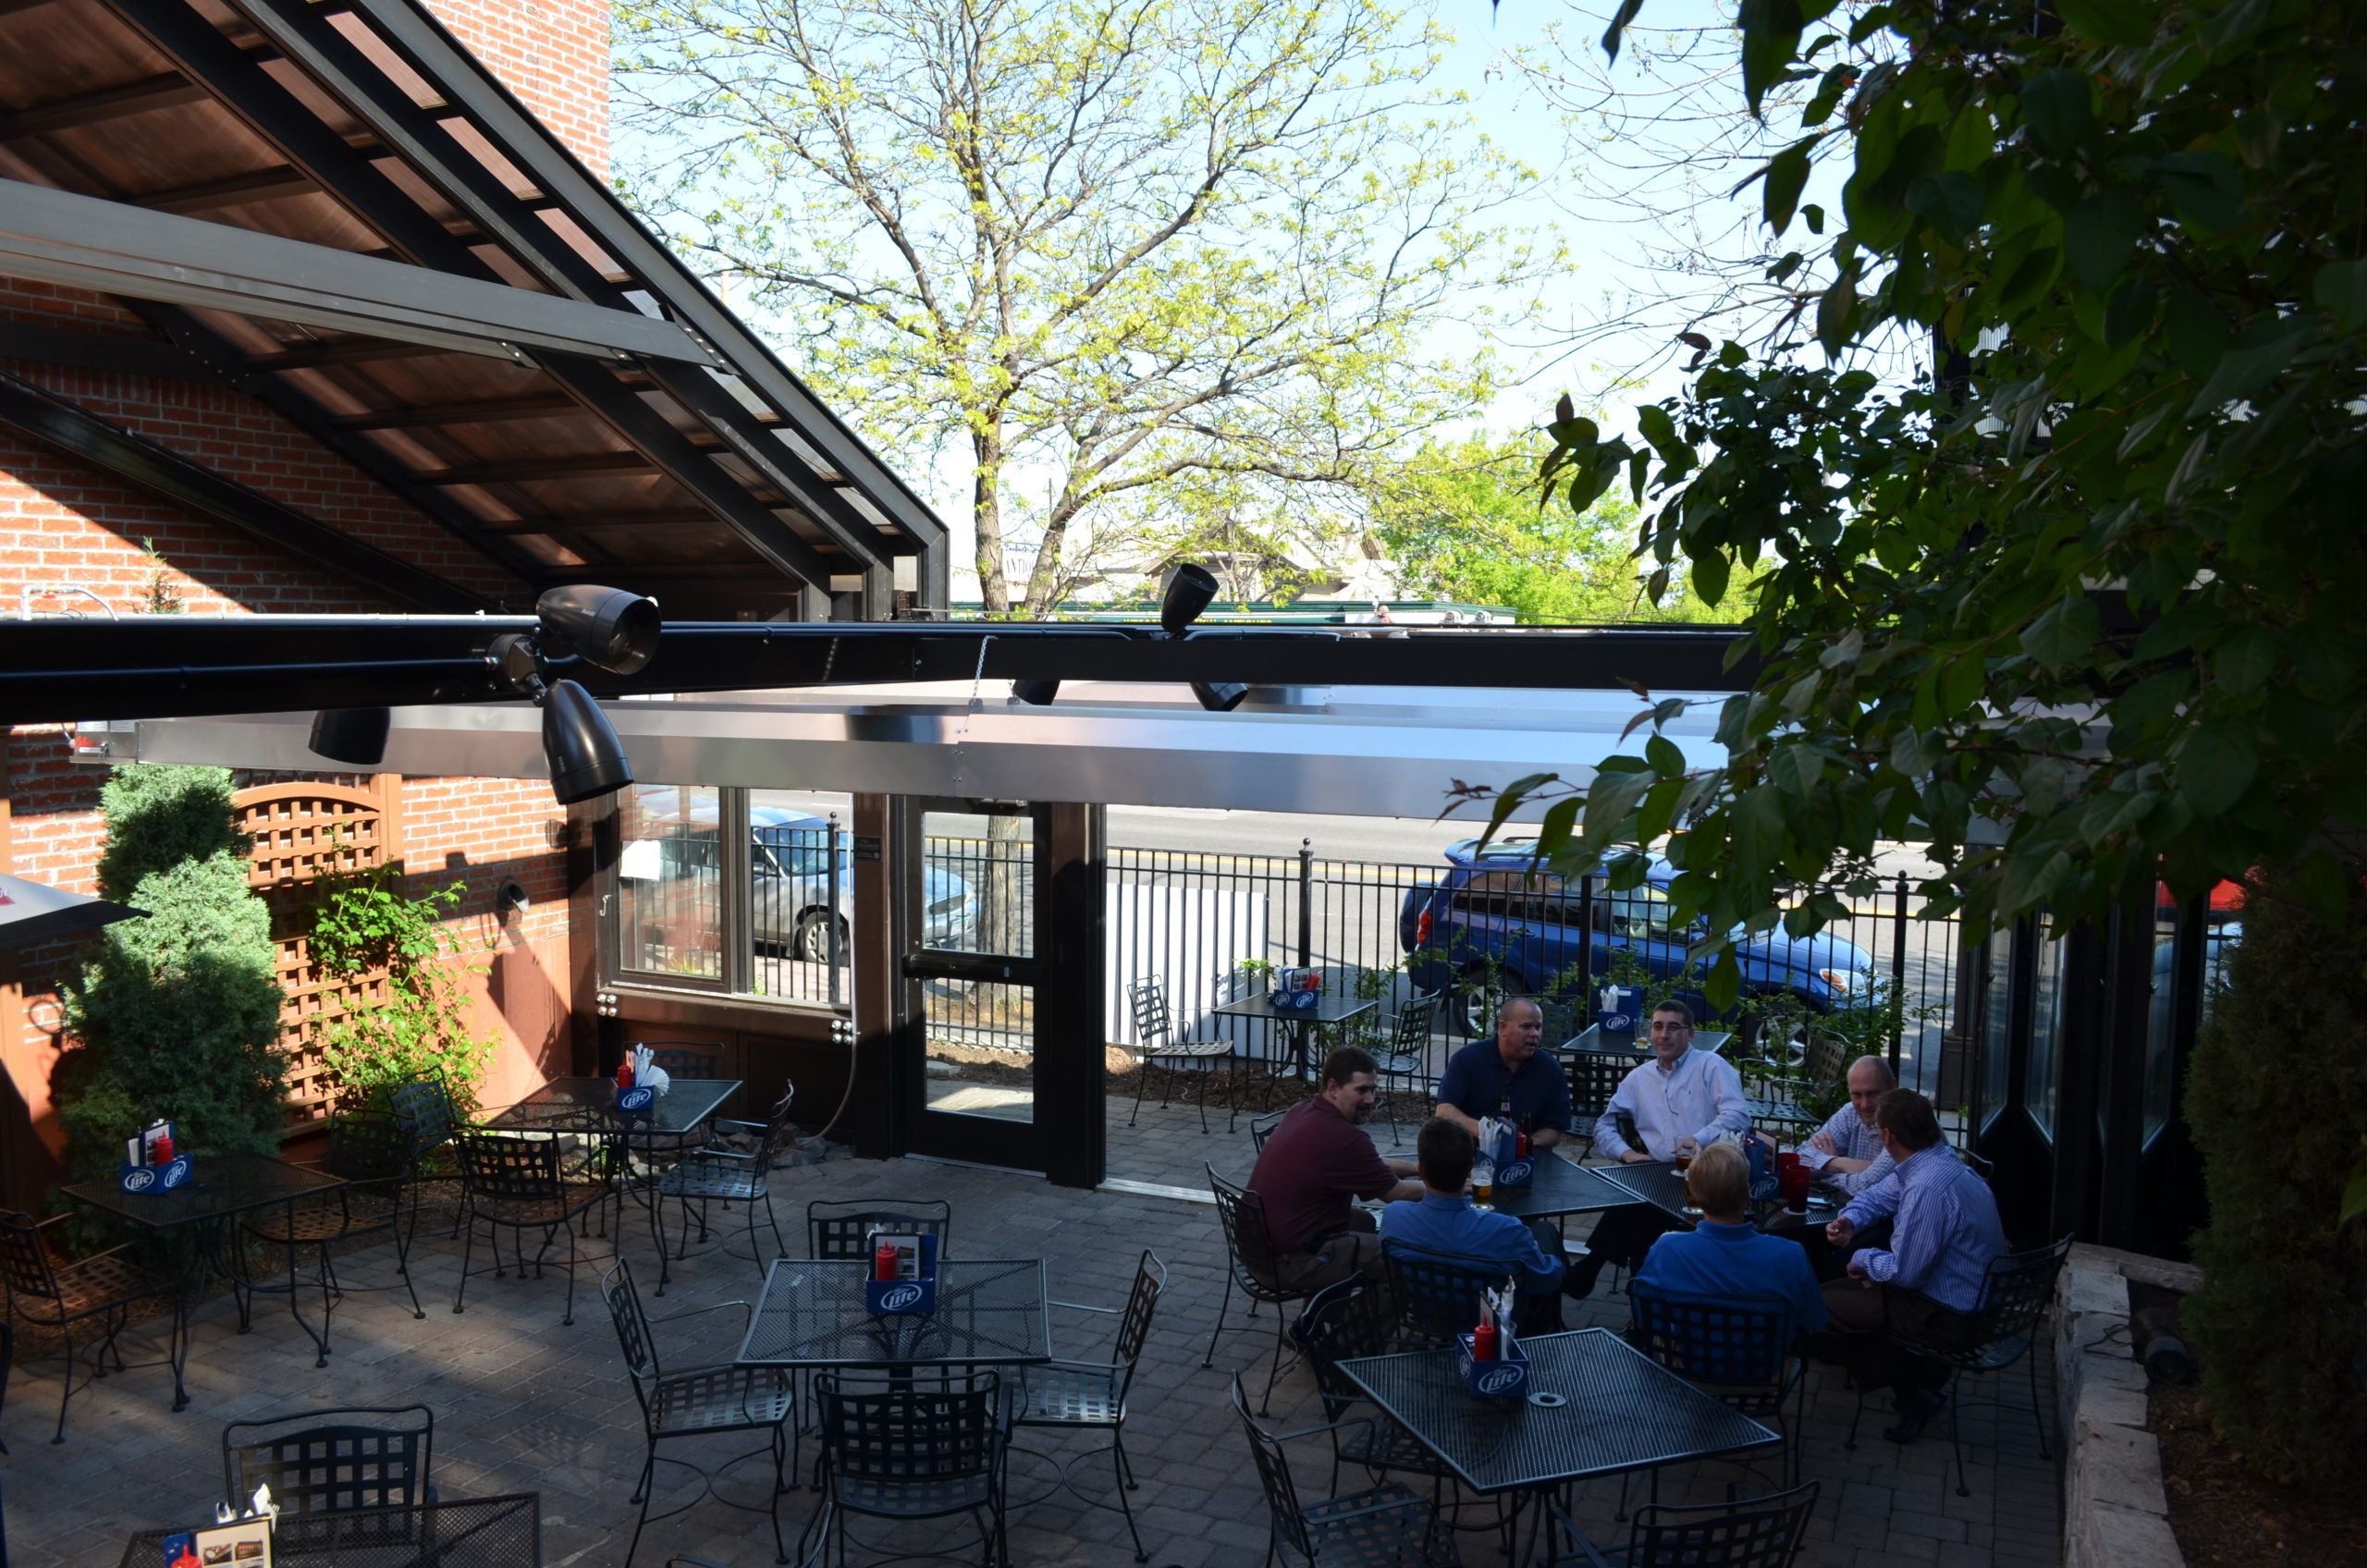 Restaurant patio enclosure